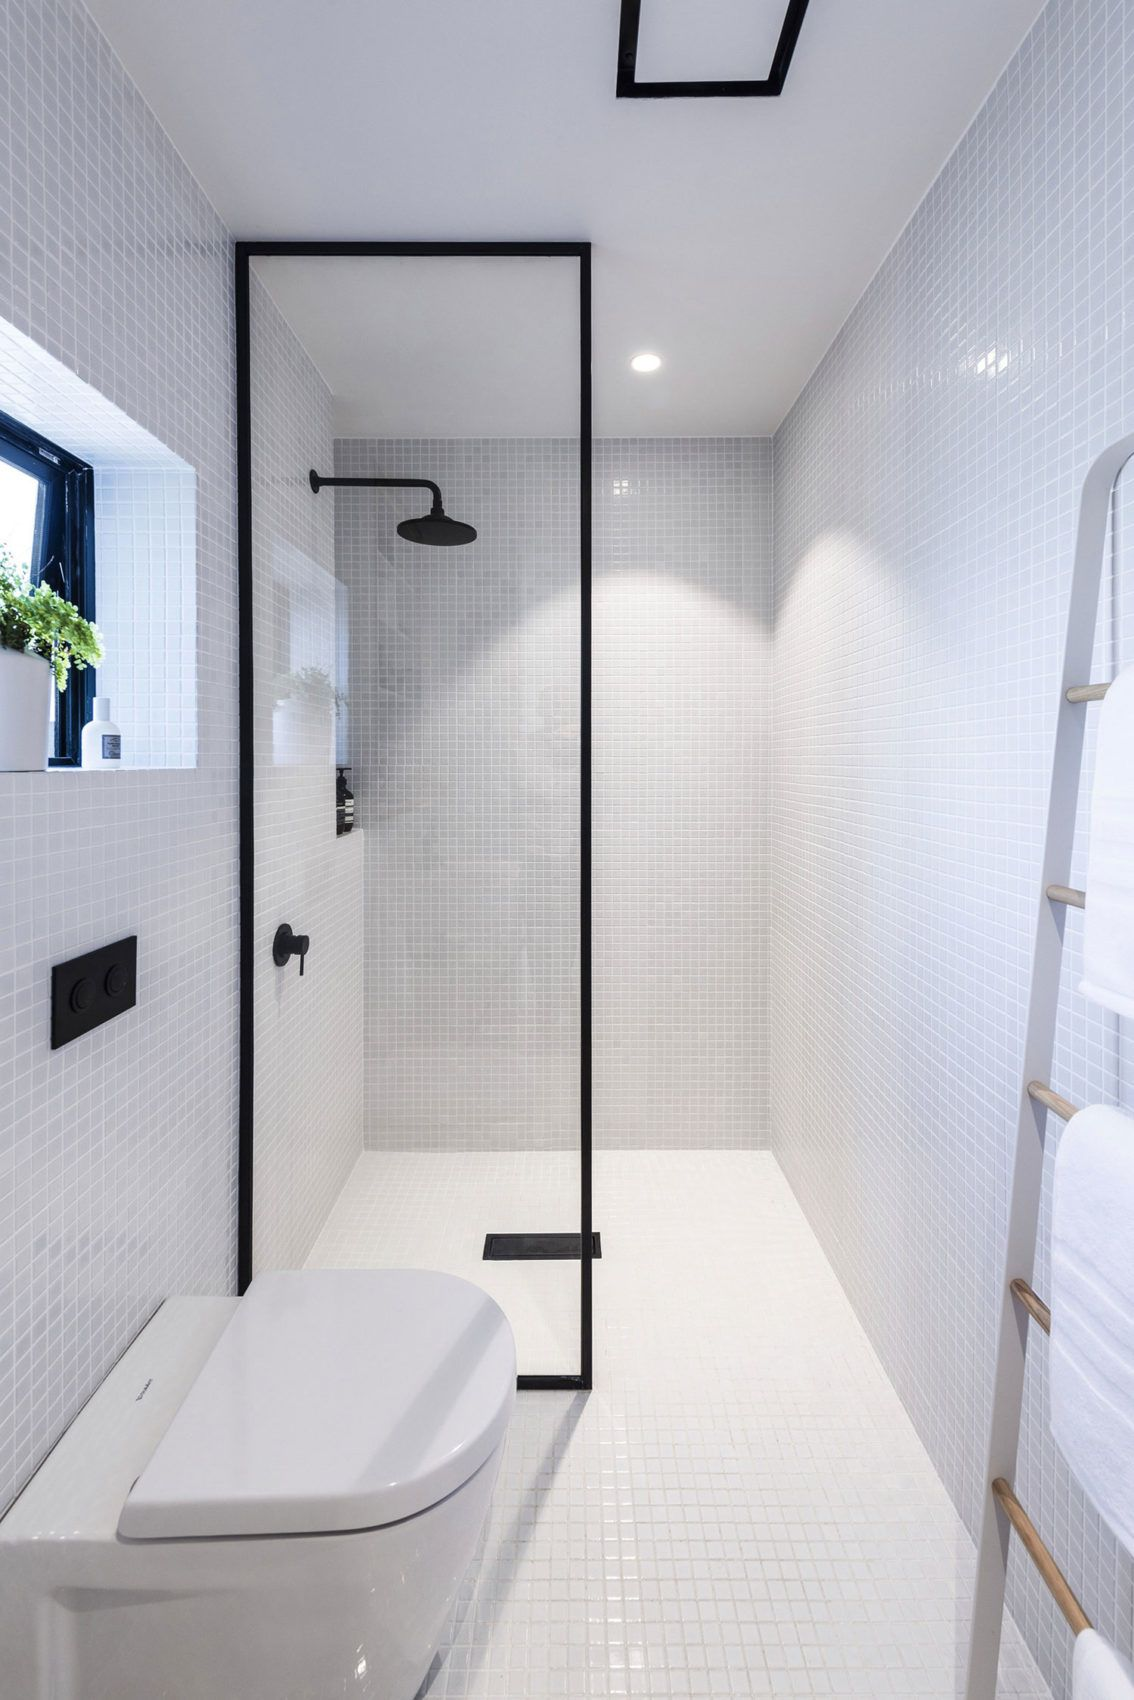 Small House In New Zealand Designed By Colab Arquitectura Urban Cottage Bathroom Interior Design Architecture Bathroom